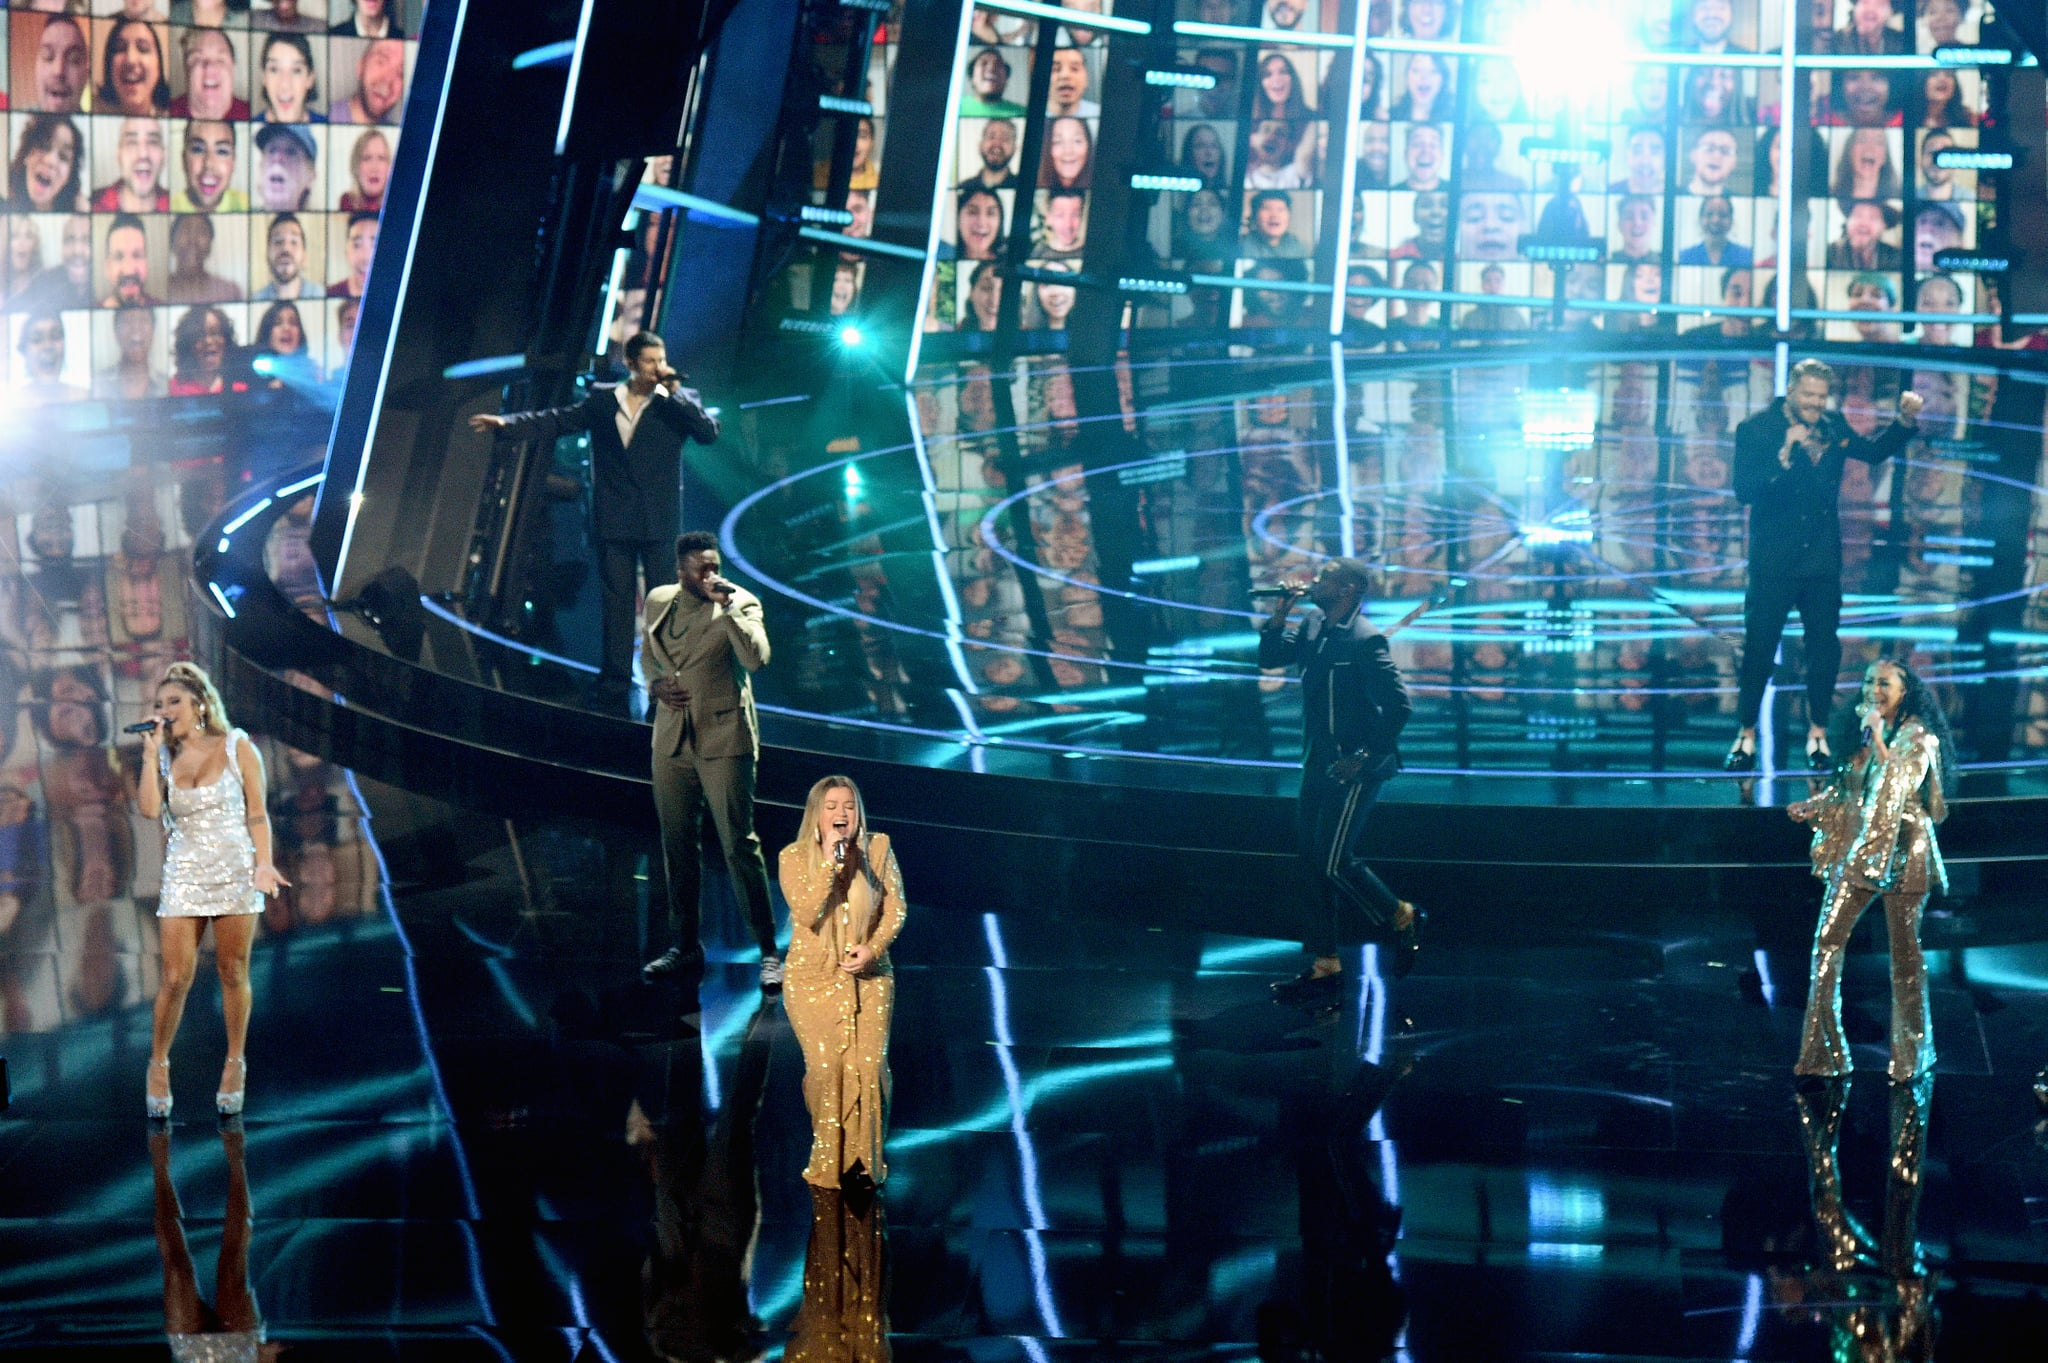 HOLLYWOOD, CALIFORNIA - OCTOBER 14: In this image released on October 14, Kirstin Maldonado, Mitch Grassi, and Kevin Olusola of Pentatonix, Kelly Clarkson, Matt Sallee and Scott Hoying of Pentatonix, and Sheila E. perform onstage at the 2020 Billboard Music Awards, broadcast on October 14, 2020 at the Dolby Theatre in Los Angeles, CA.  (Photo by Kevin Mazur/BBMA2020/Getty Images for dcp)